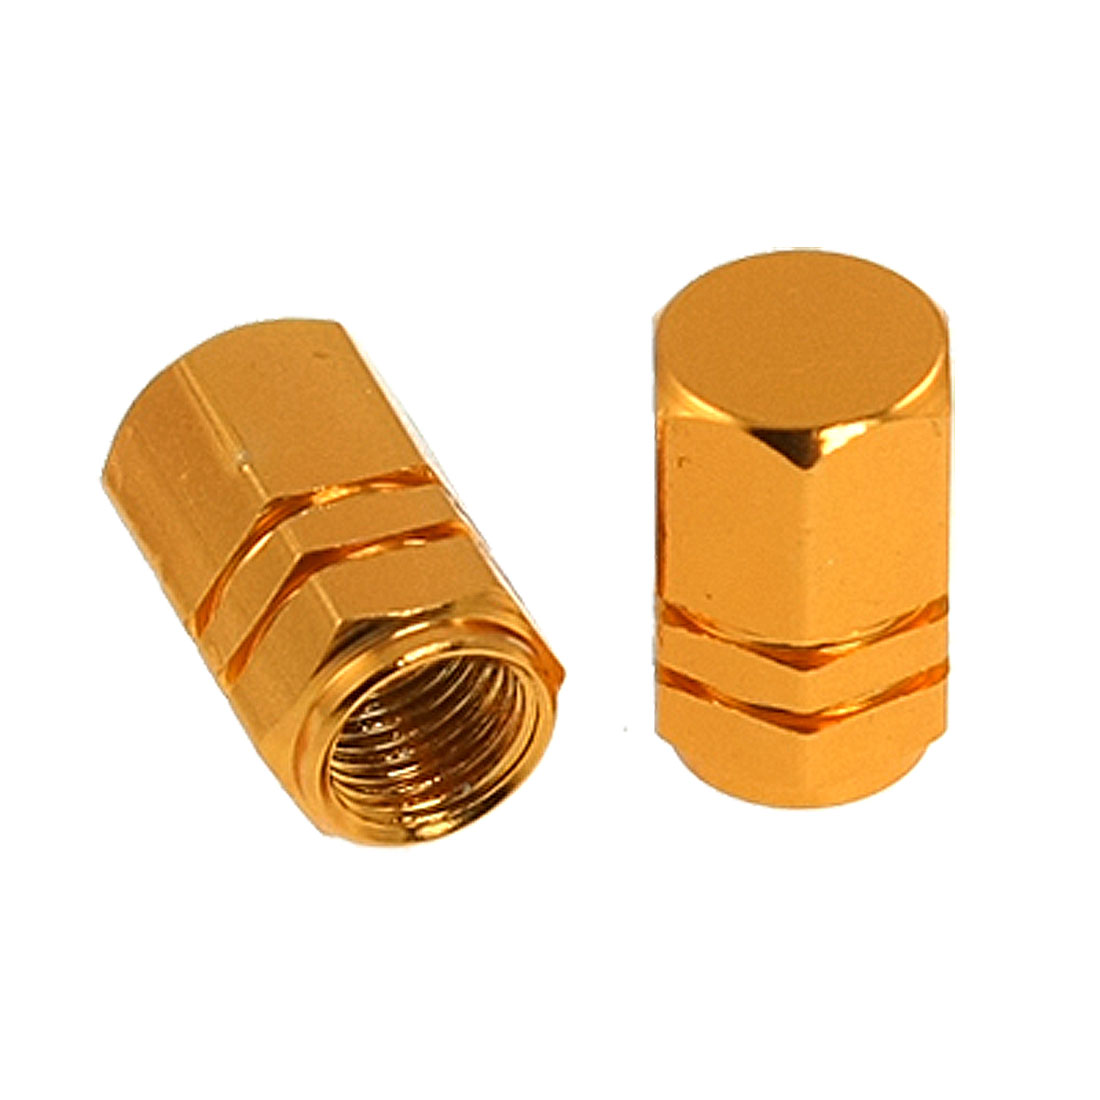 Gold Tone Hexagon Aluminum Alloy Tire Valve Caps 4 Pcs for Car Vehicle